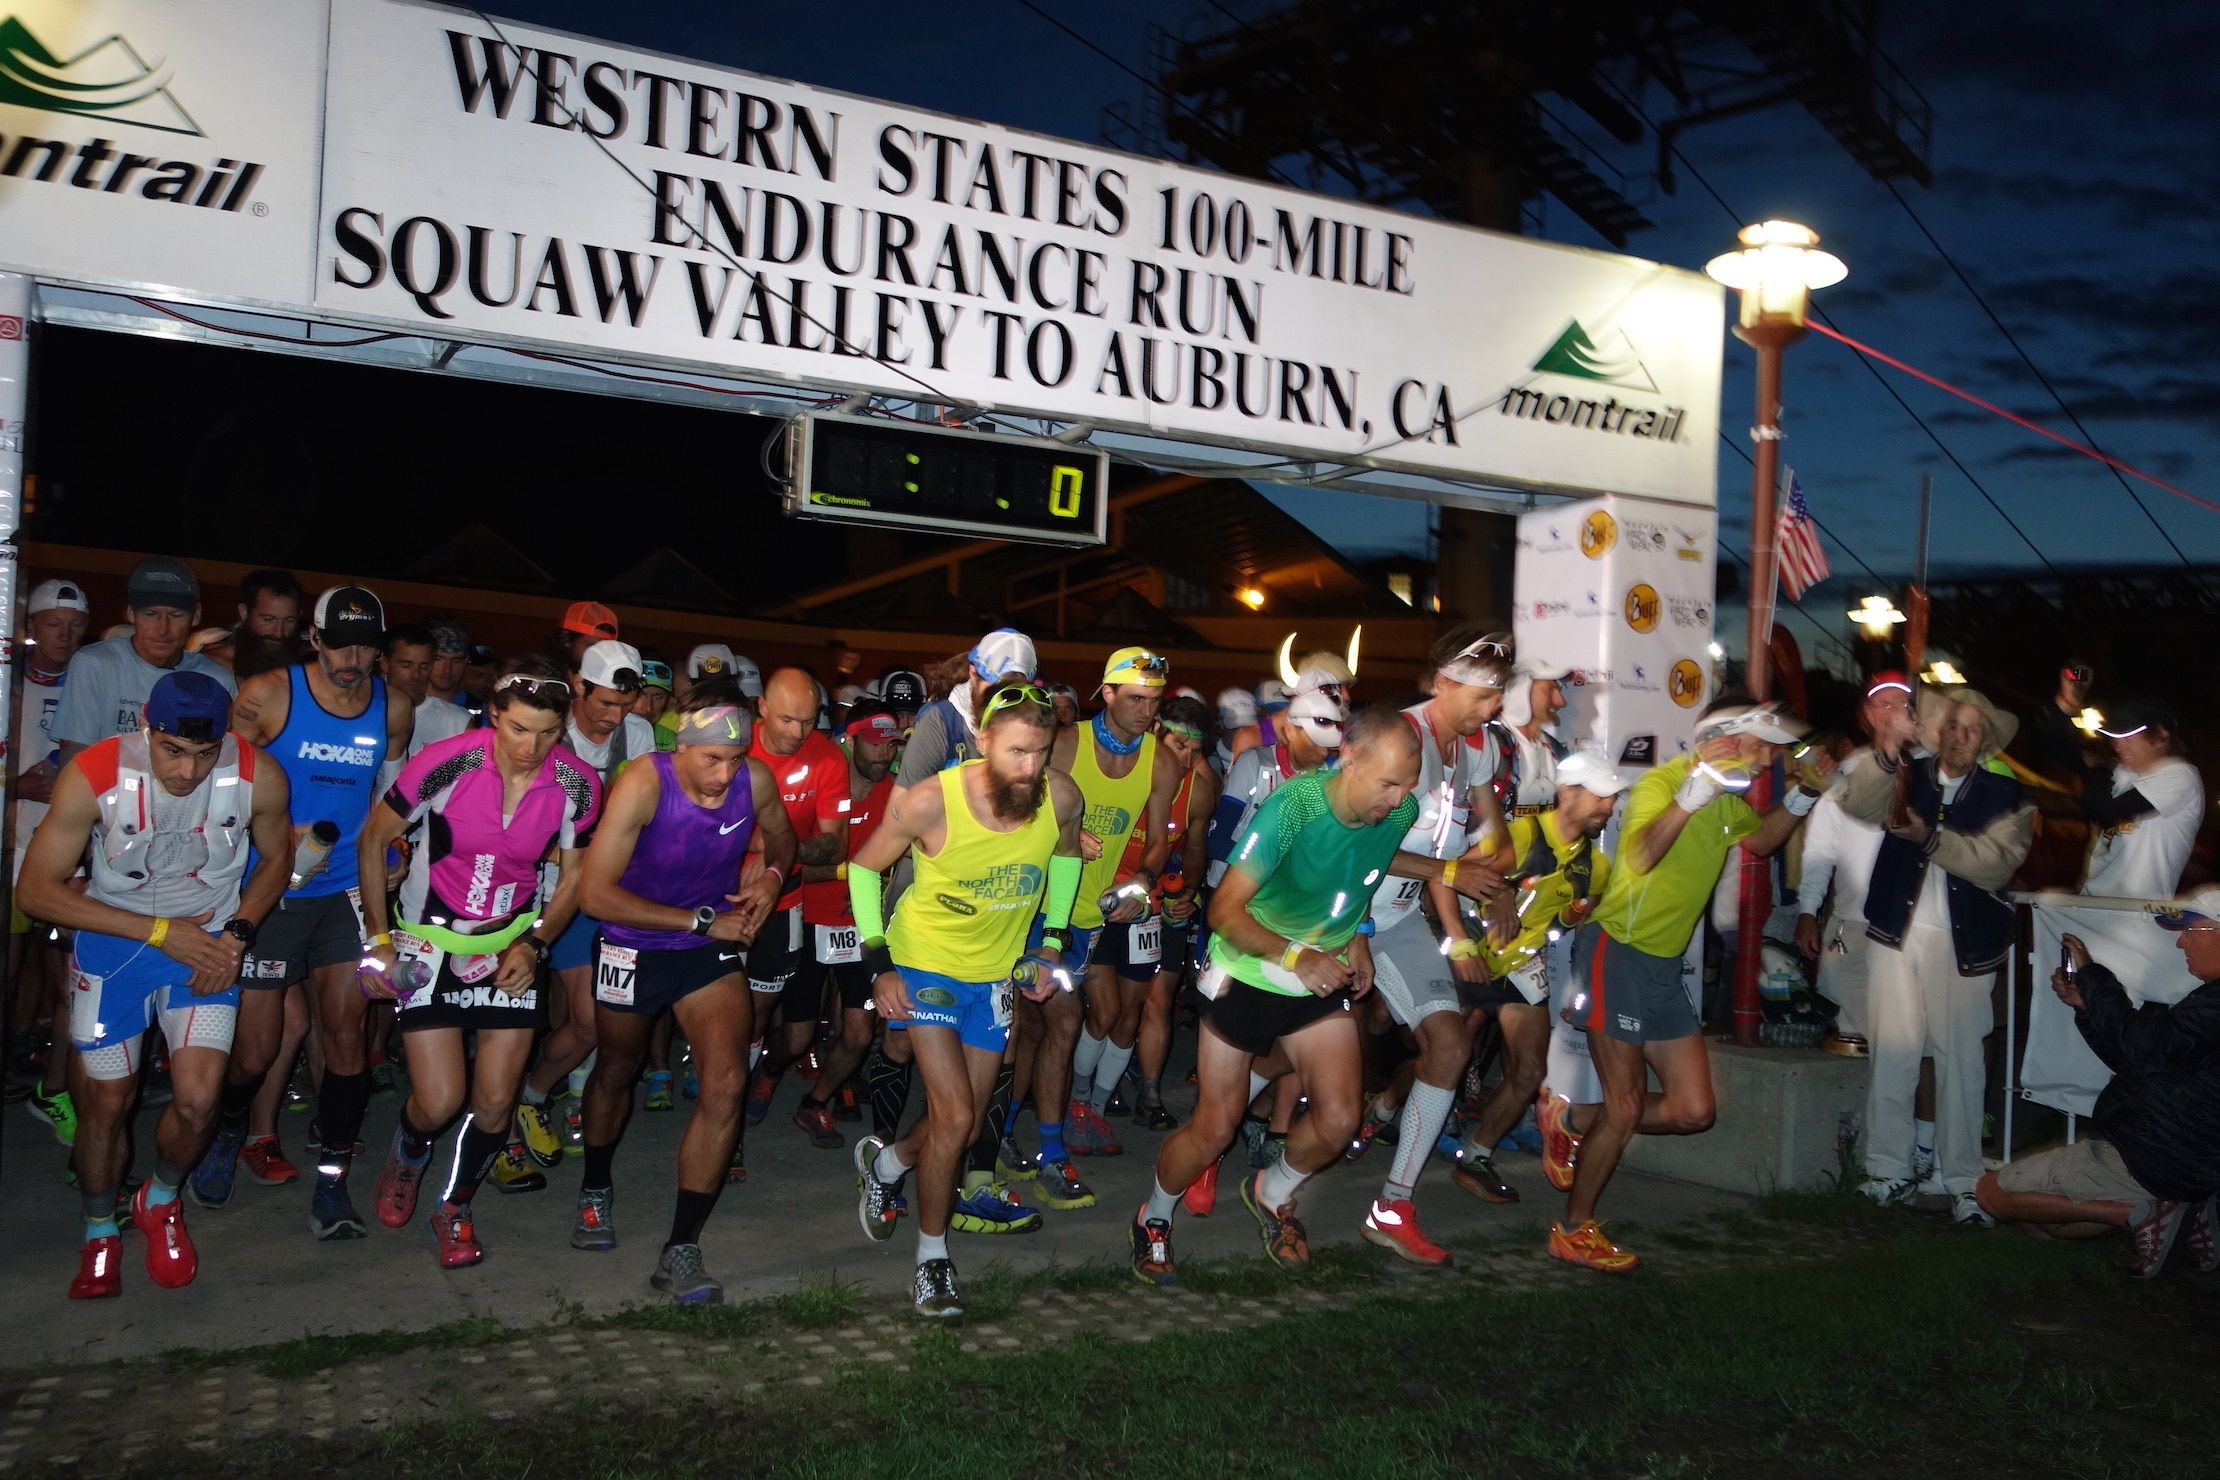 Western States Endurance Run Will Have Drug Testing at 2017 Race